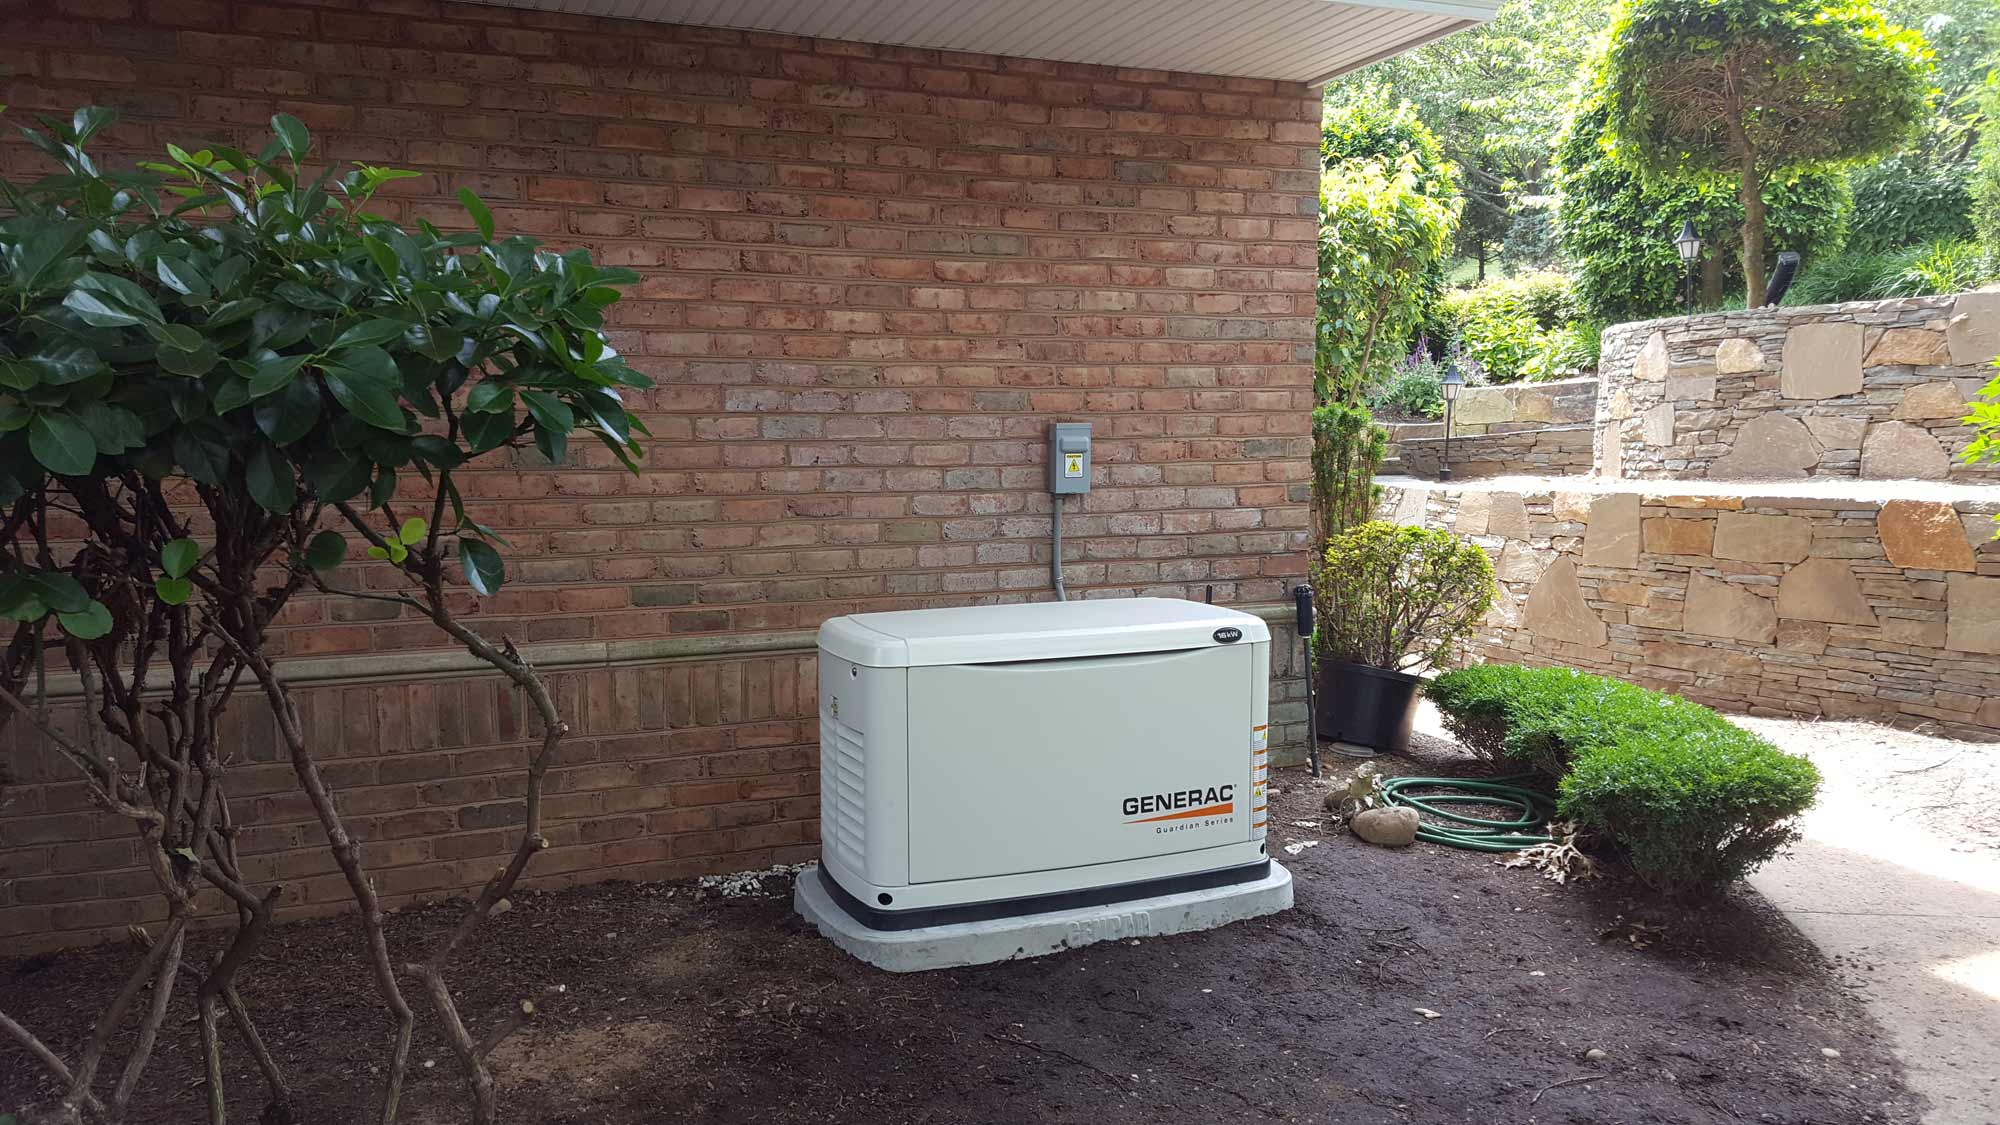 hight resolution of powerpro is the largest generator company on long island offering more brands of standby generators than any other emergency power company